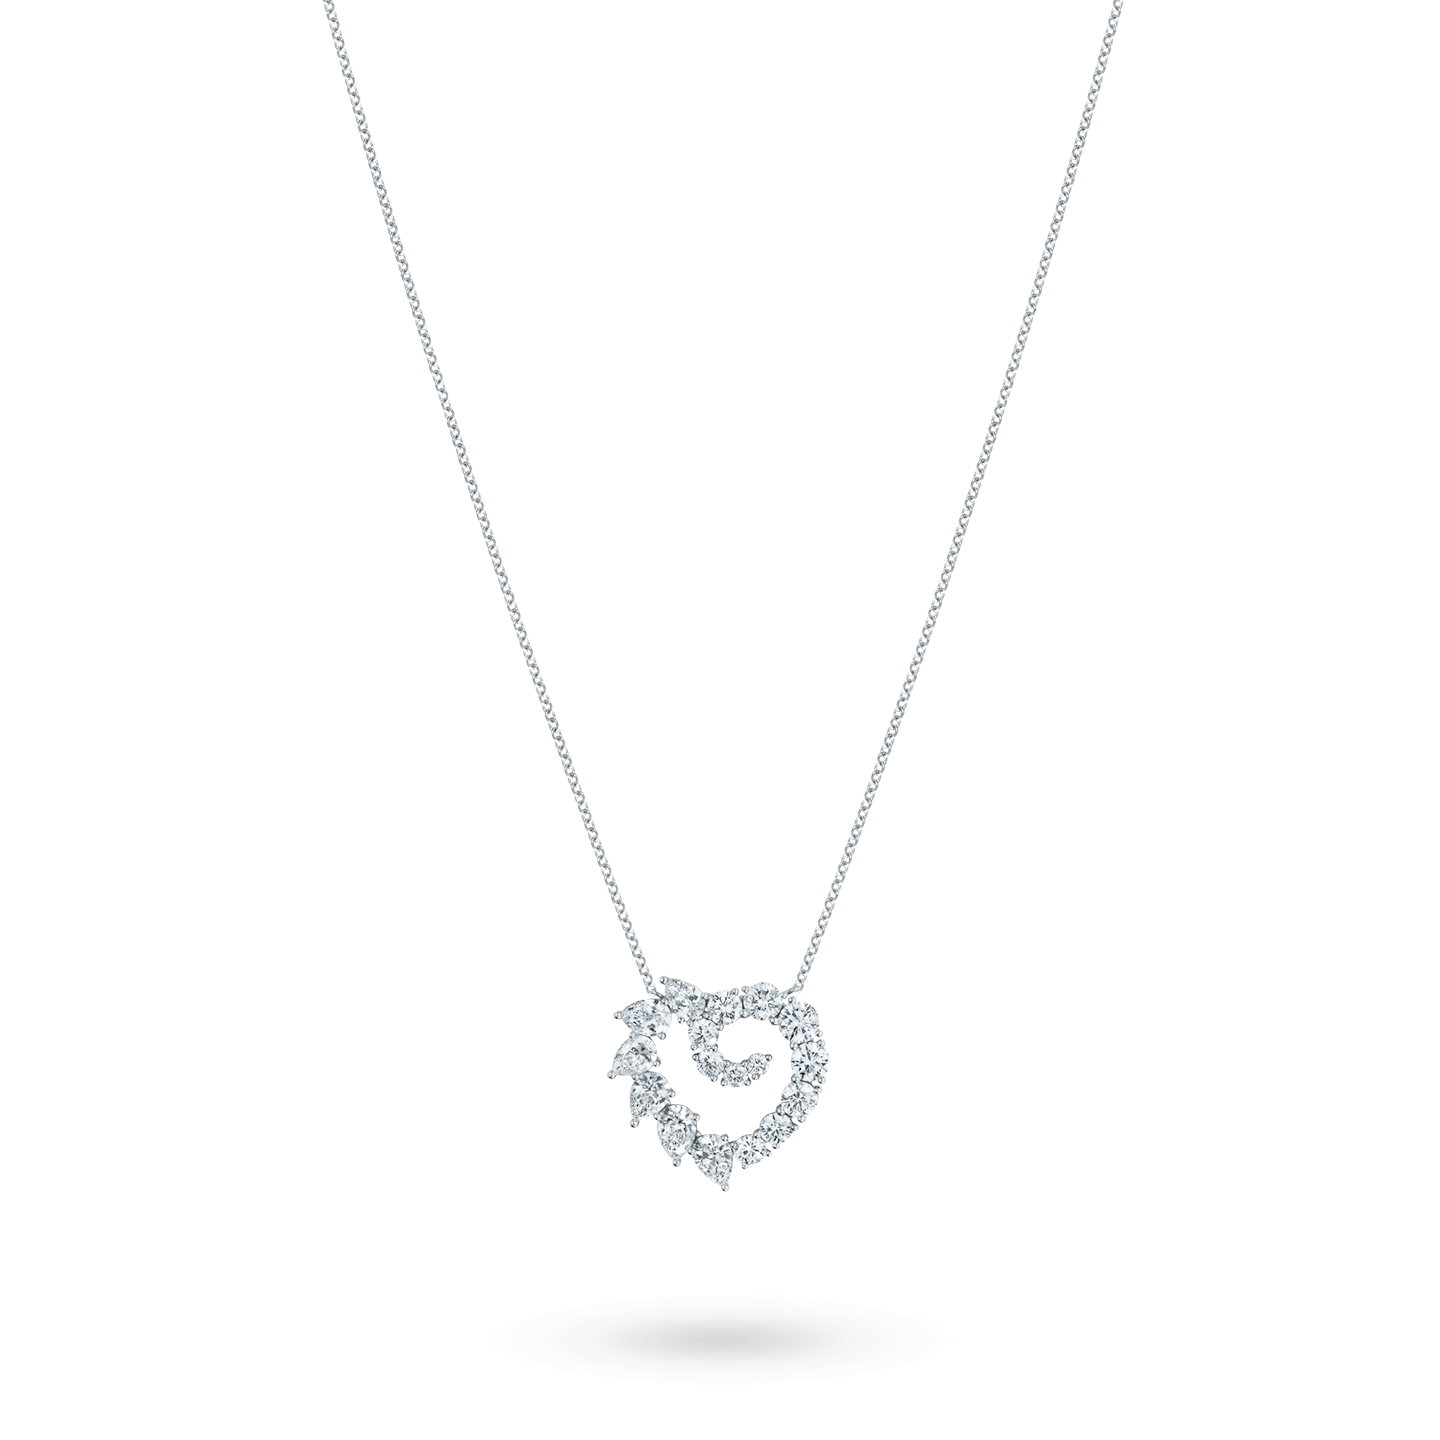 Garland Large Heart Diamond Pendant, Product Image 2